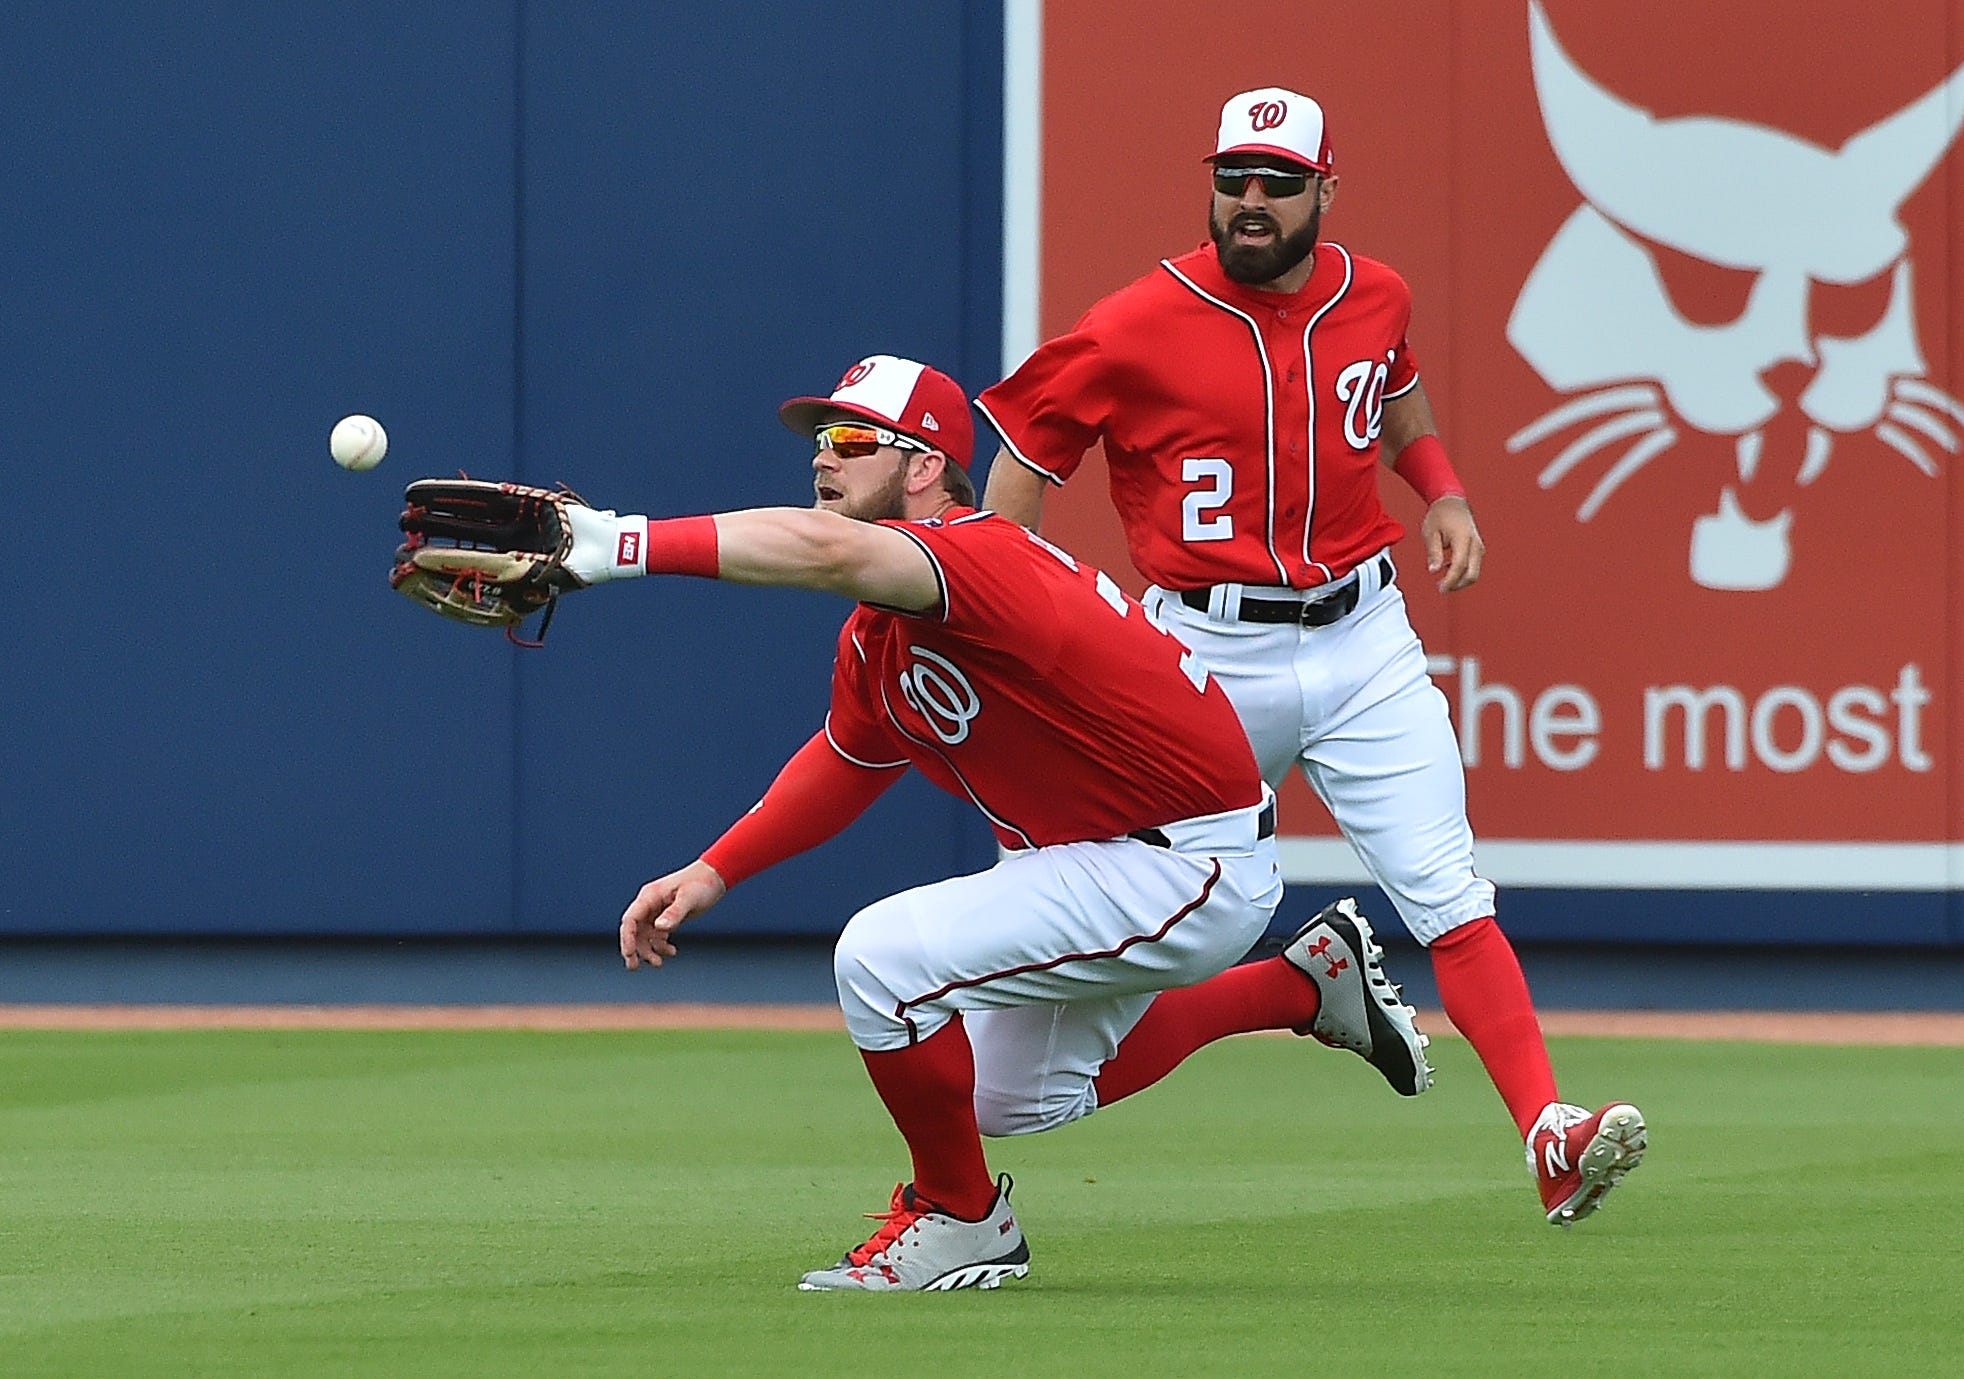 204c20c0d http://www.usatoday.com/picture-gallery/sports/mlb/2014/06/19/recent ...